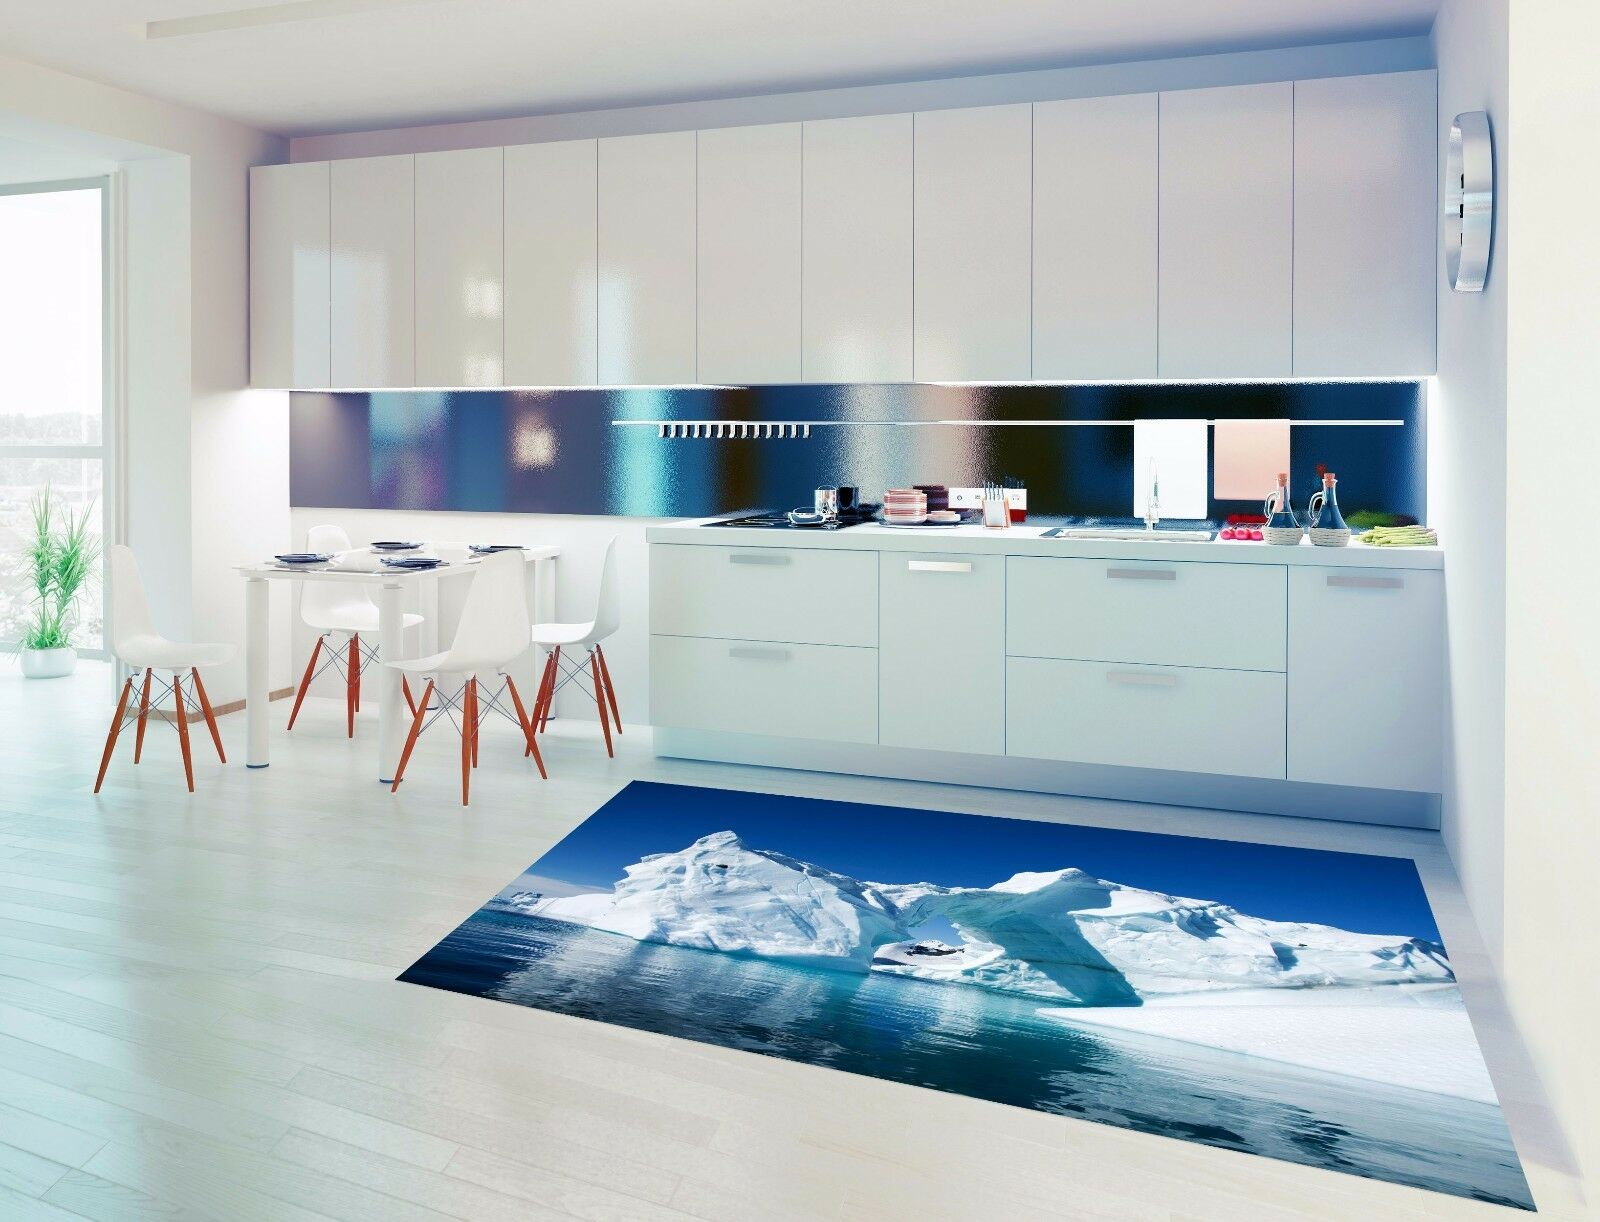 3D Sea Ice Cubes 7 Kitchen Mat Floor Murals Wall Print Wall AJ WALLPAPER UK Kyra